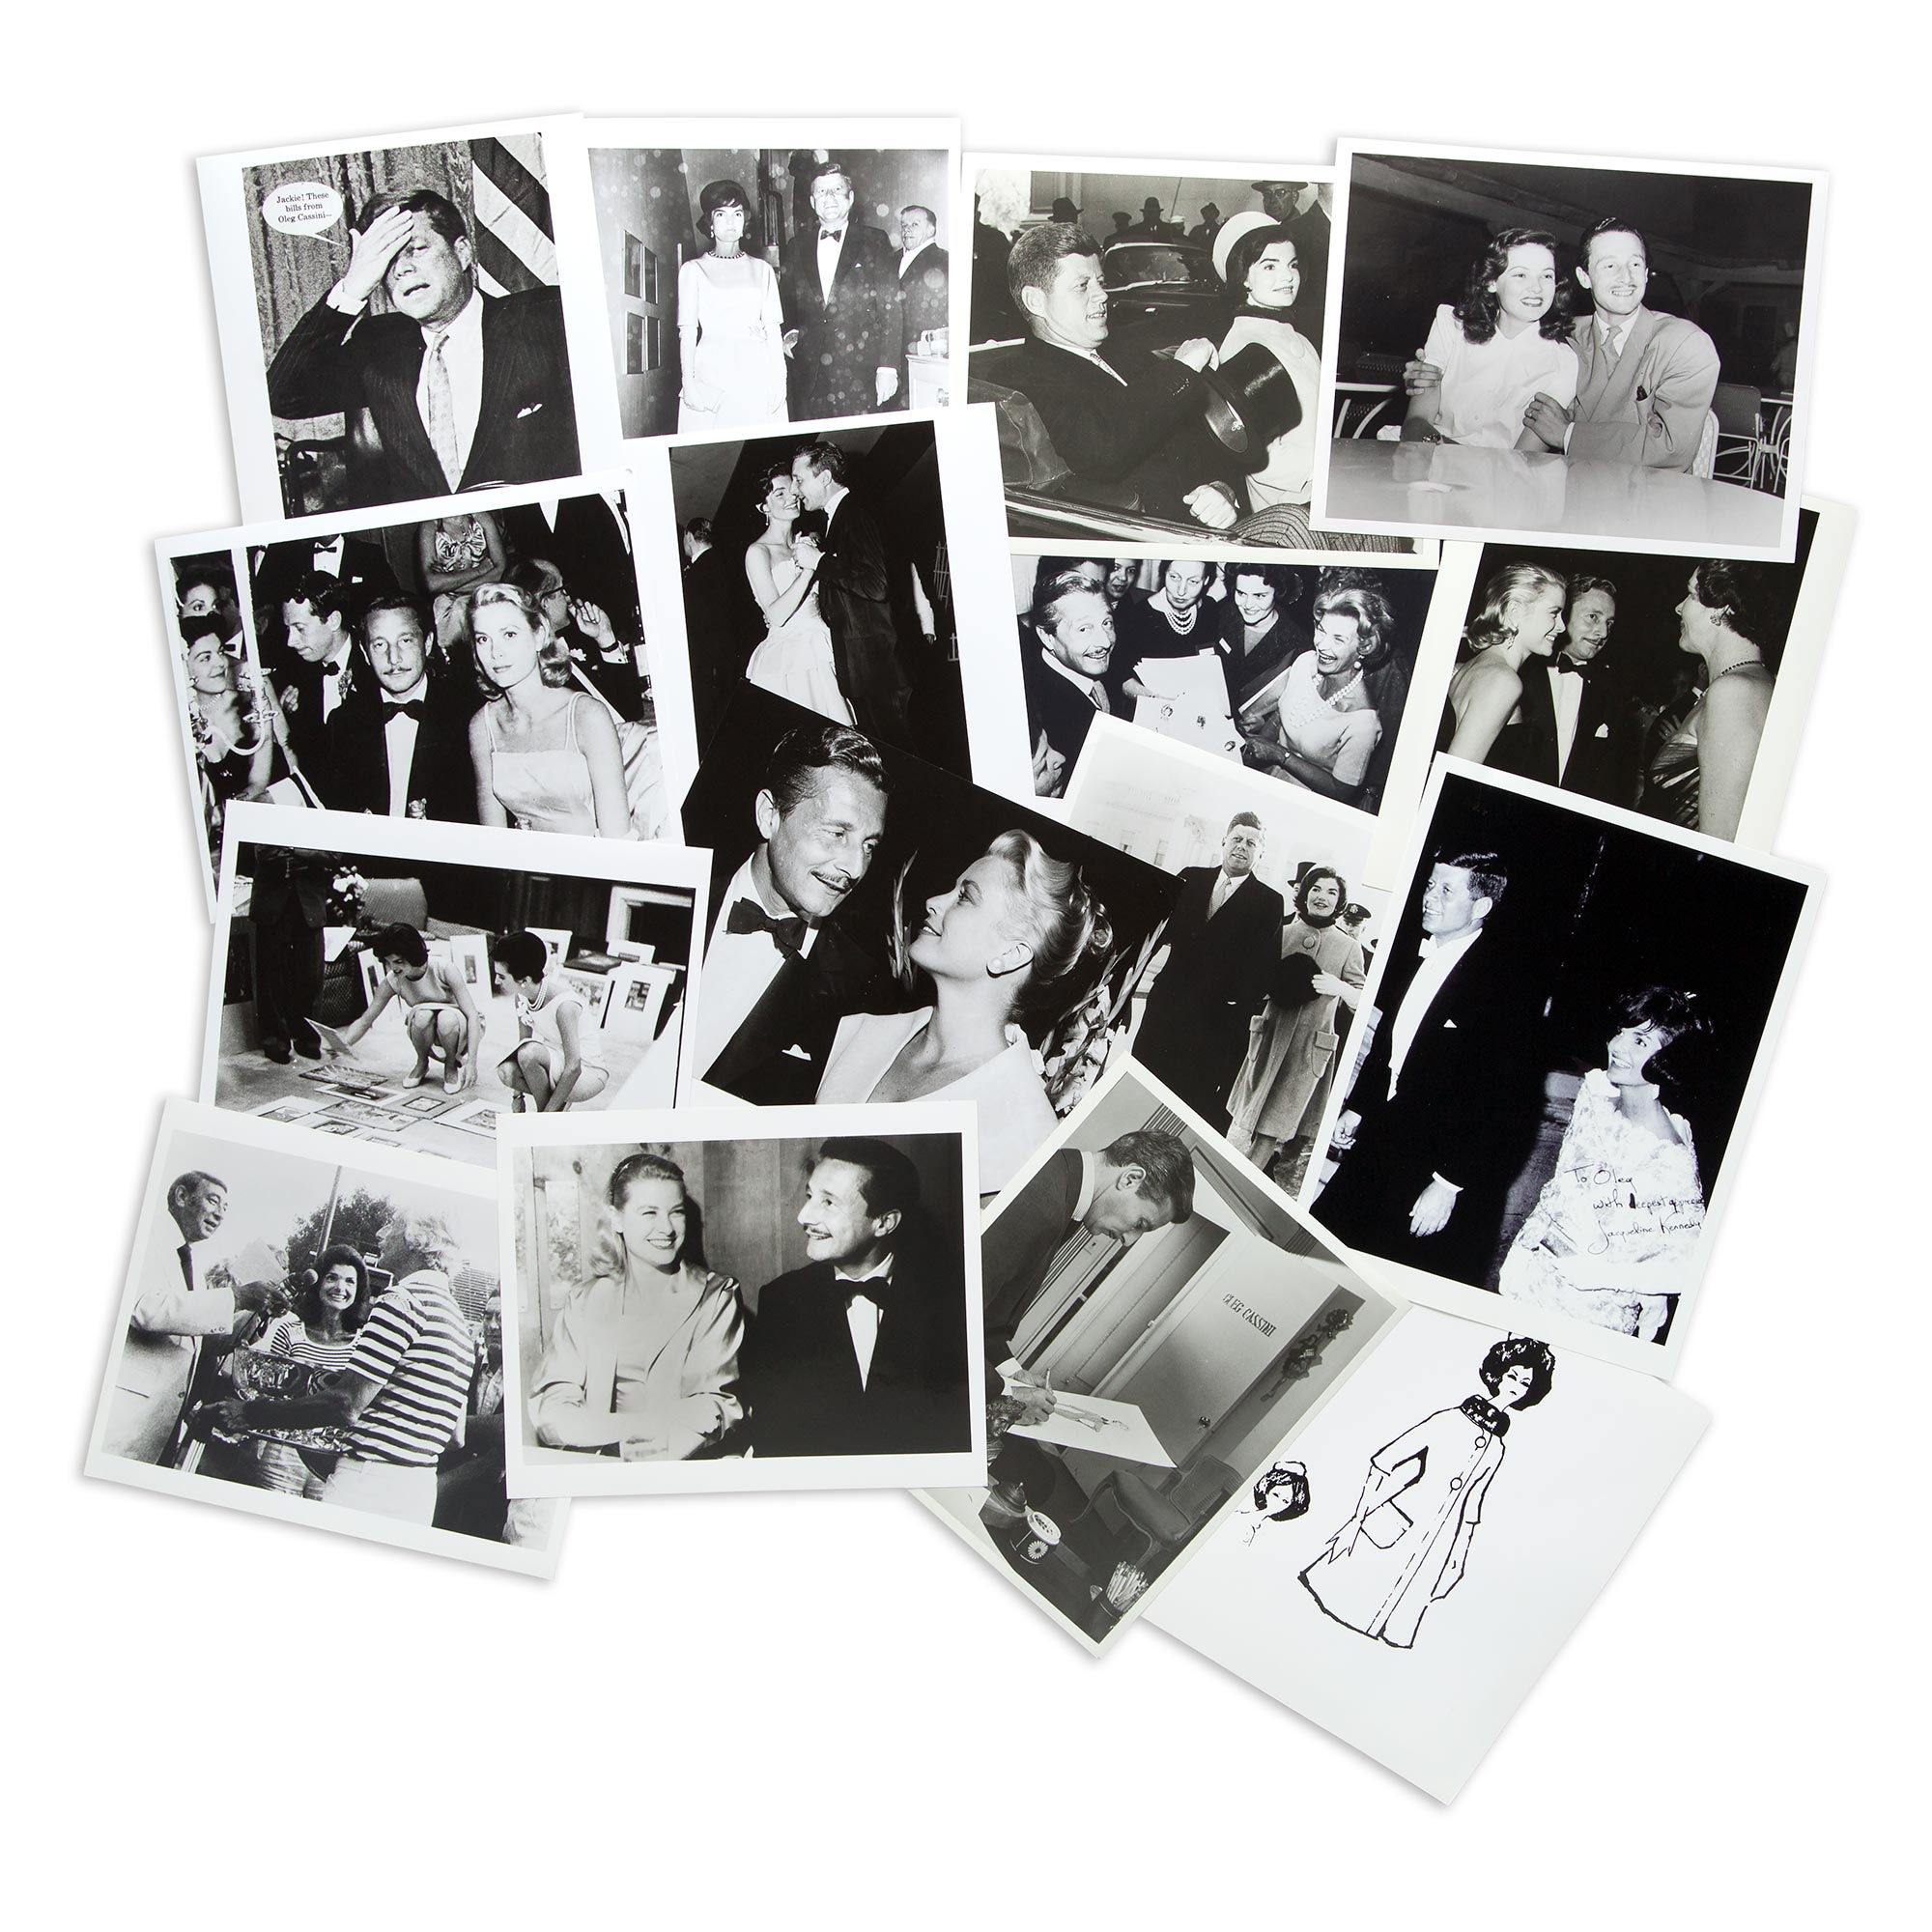 Lot image - [CASSINI-PHOTOGRAPHY ARCHIVE]  Large photography archive documenting Cassinis career with many images of Jacqueline Kennedy, Grace Kelly, and Gene Tierney.